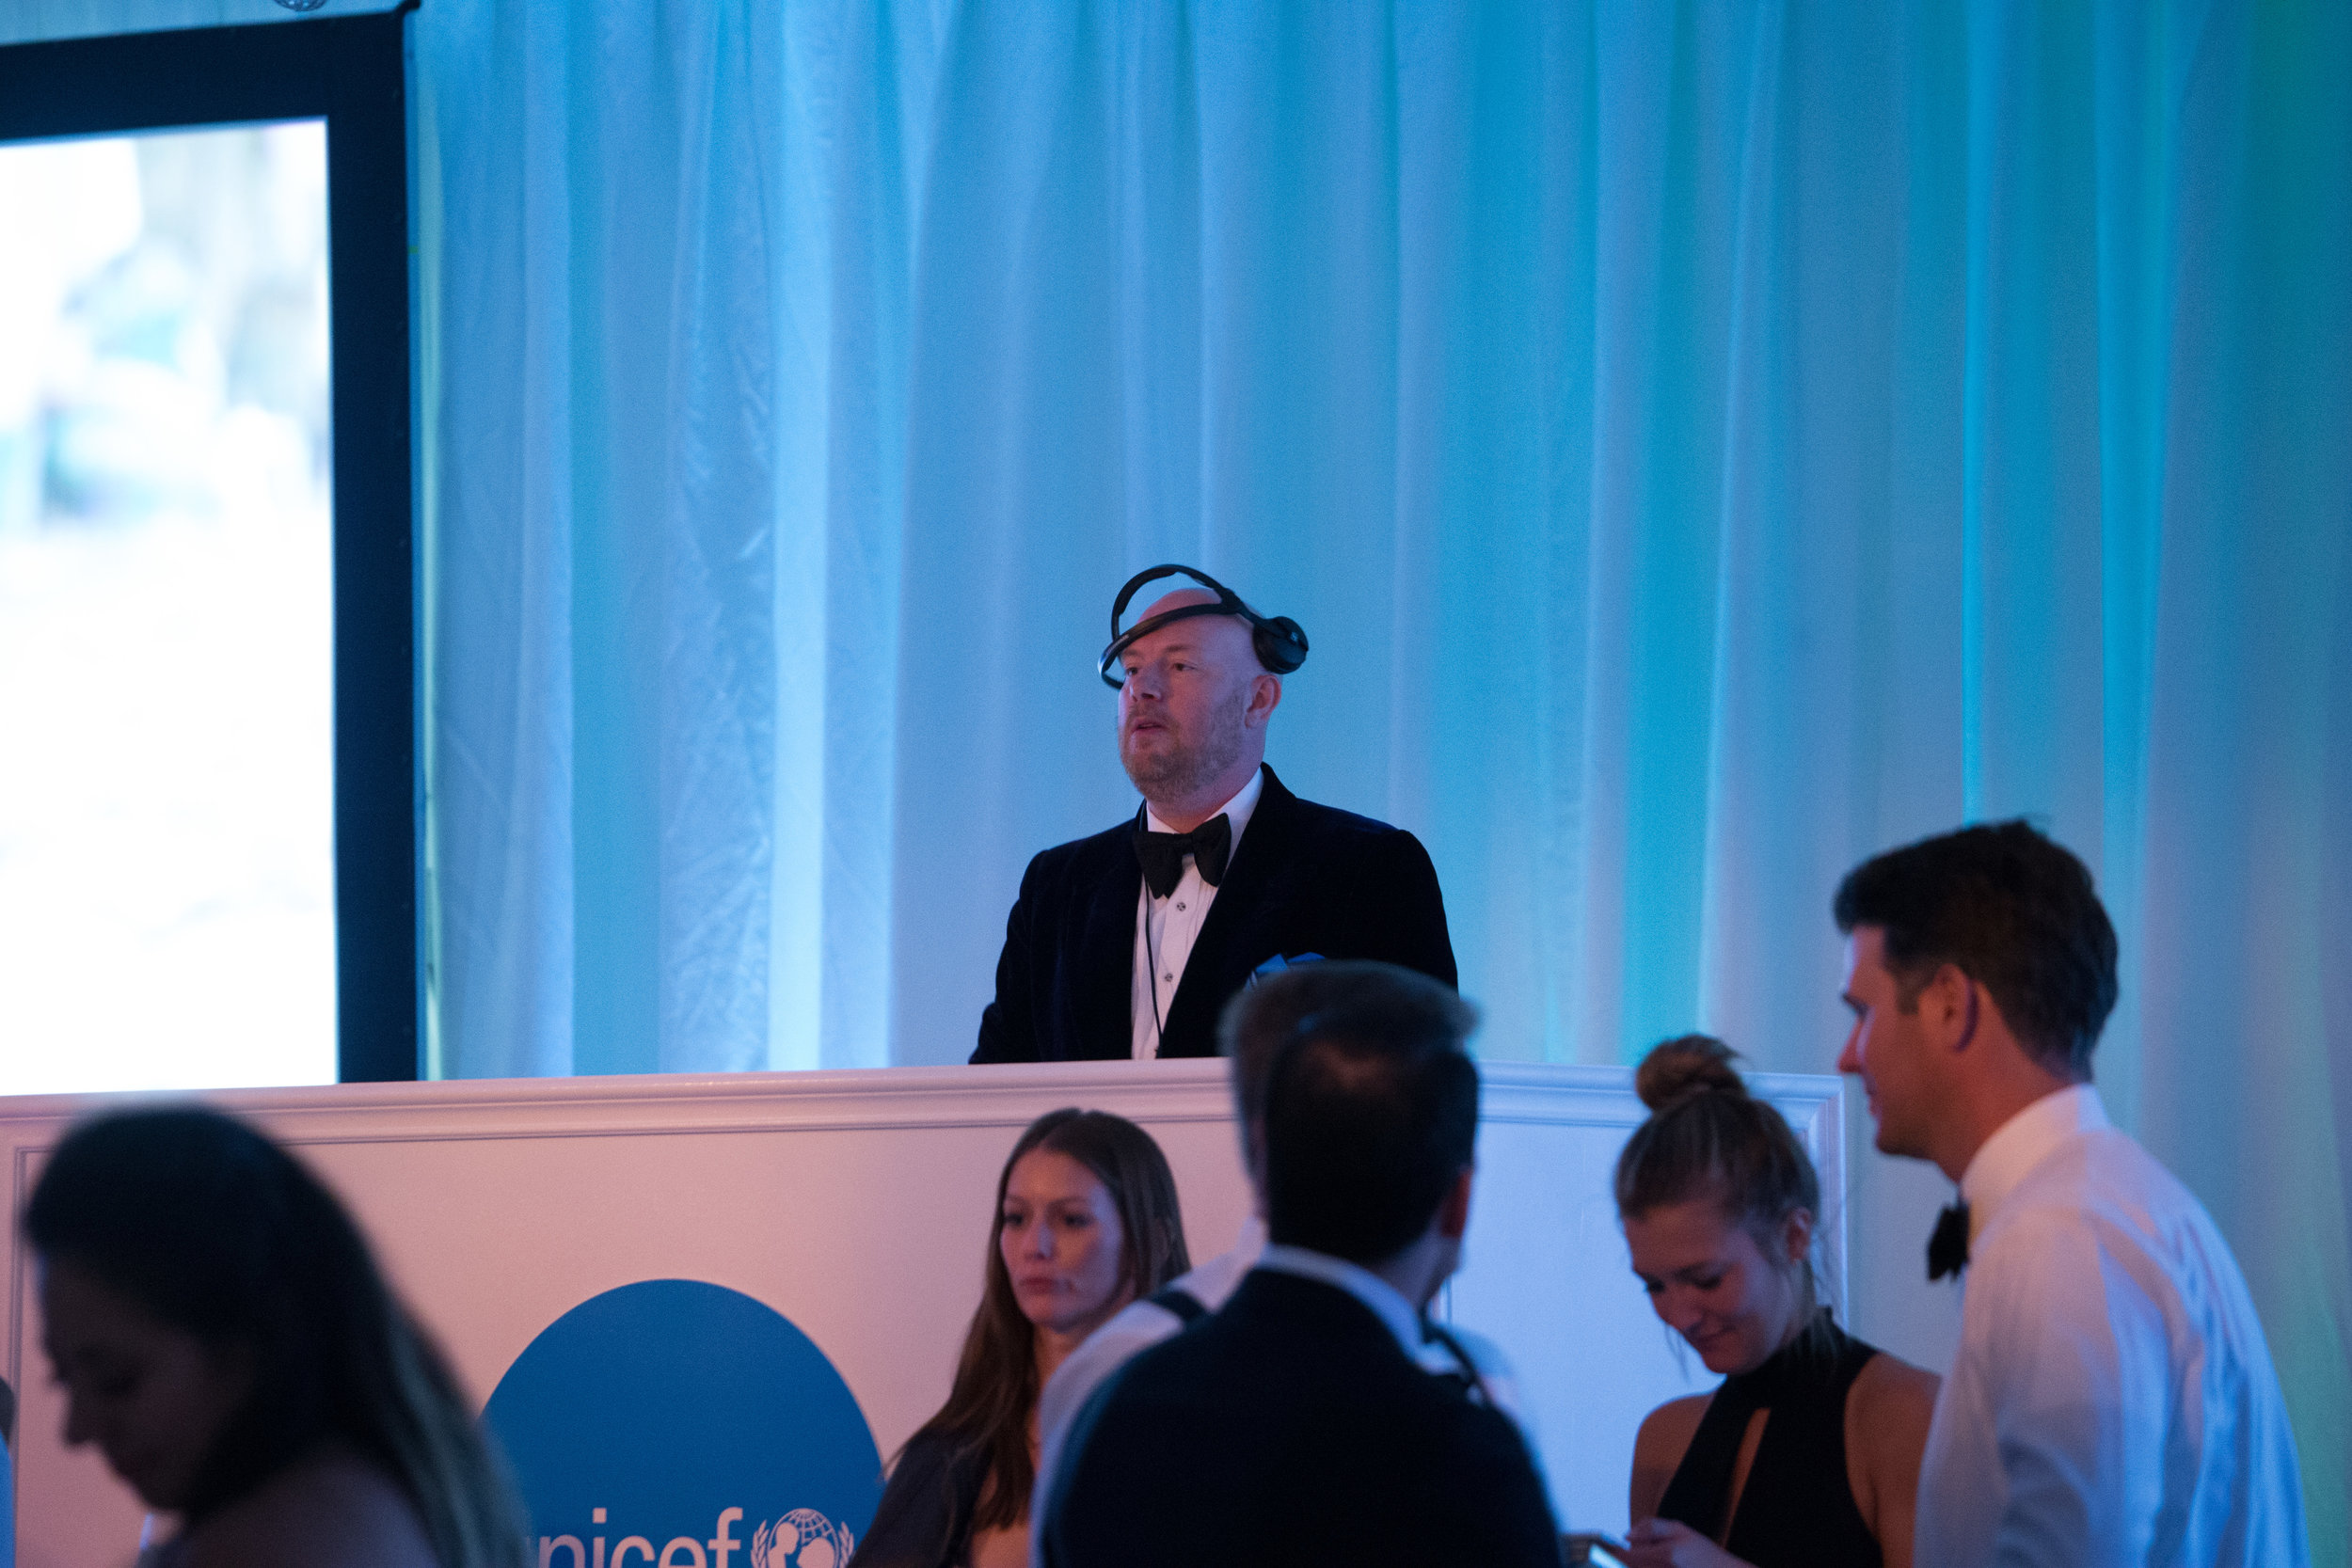 DJ Eric Prydz performing at the UNICEF Gala San Francisco (Photo by Drew Altizer)